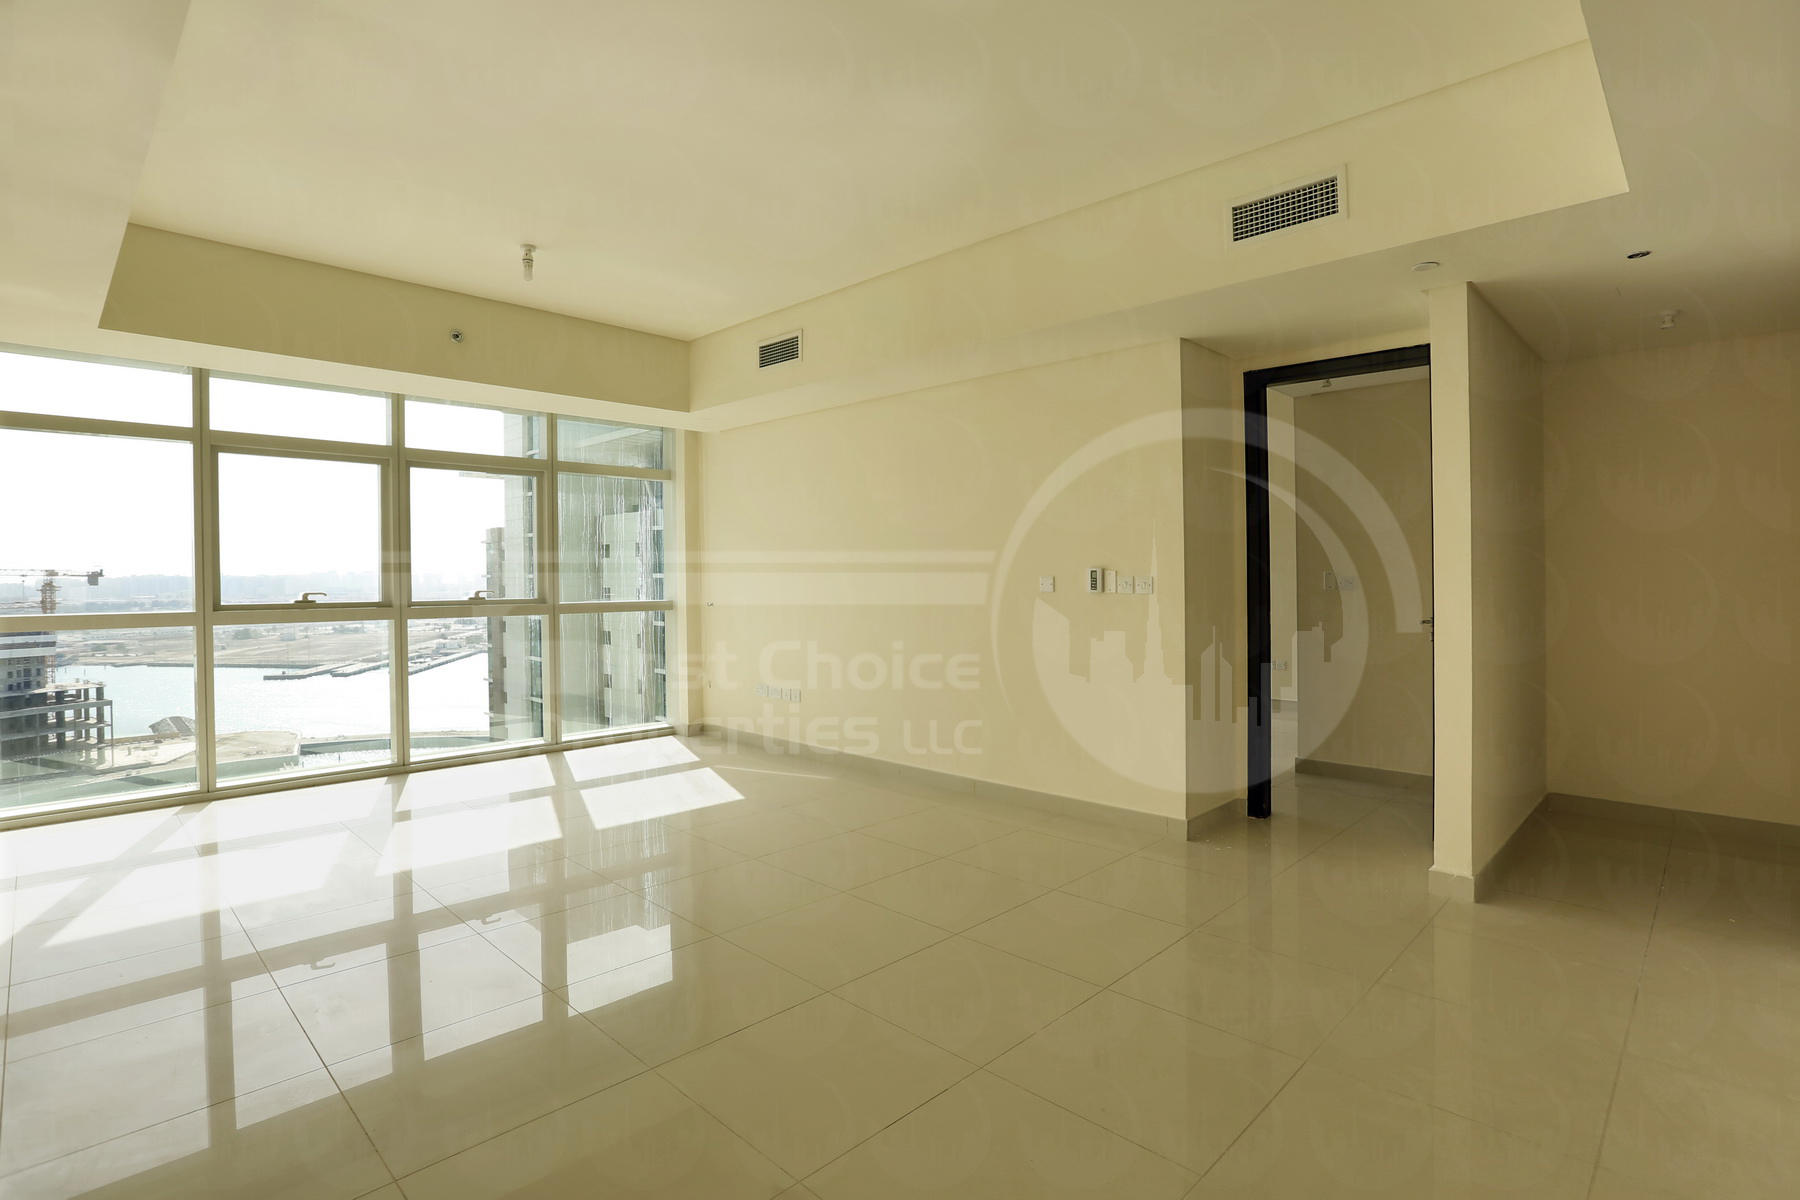 2 Bedroom Apartment - UAE - Abu Dhabi - Al Reem Island - Tala Tower (11).JPG